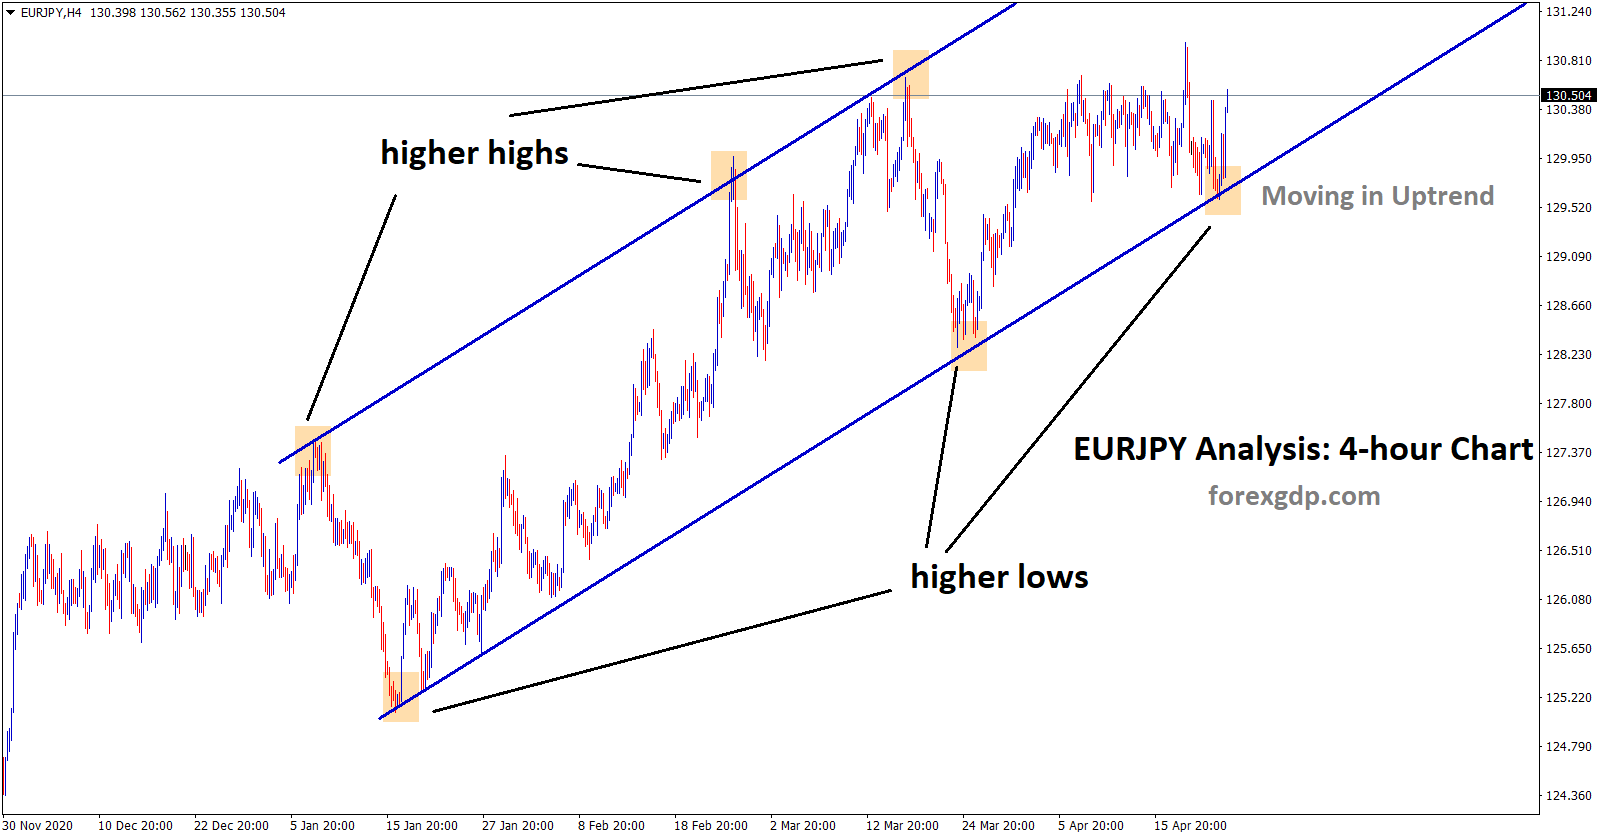 EURJPY is moving in an uptrend with consolidation.